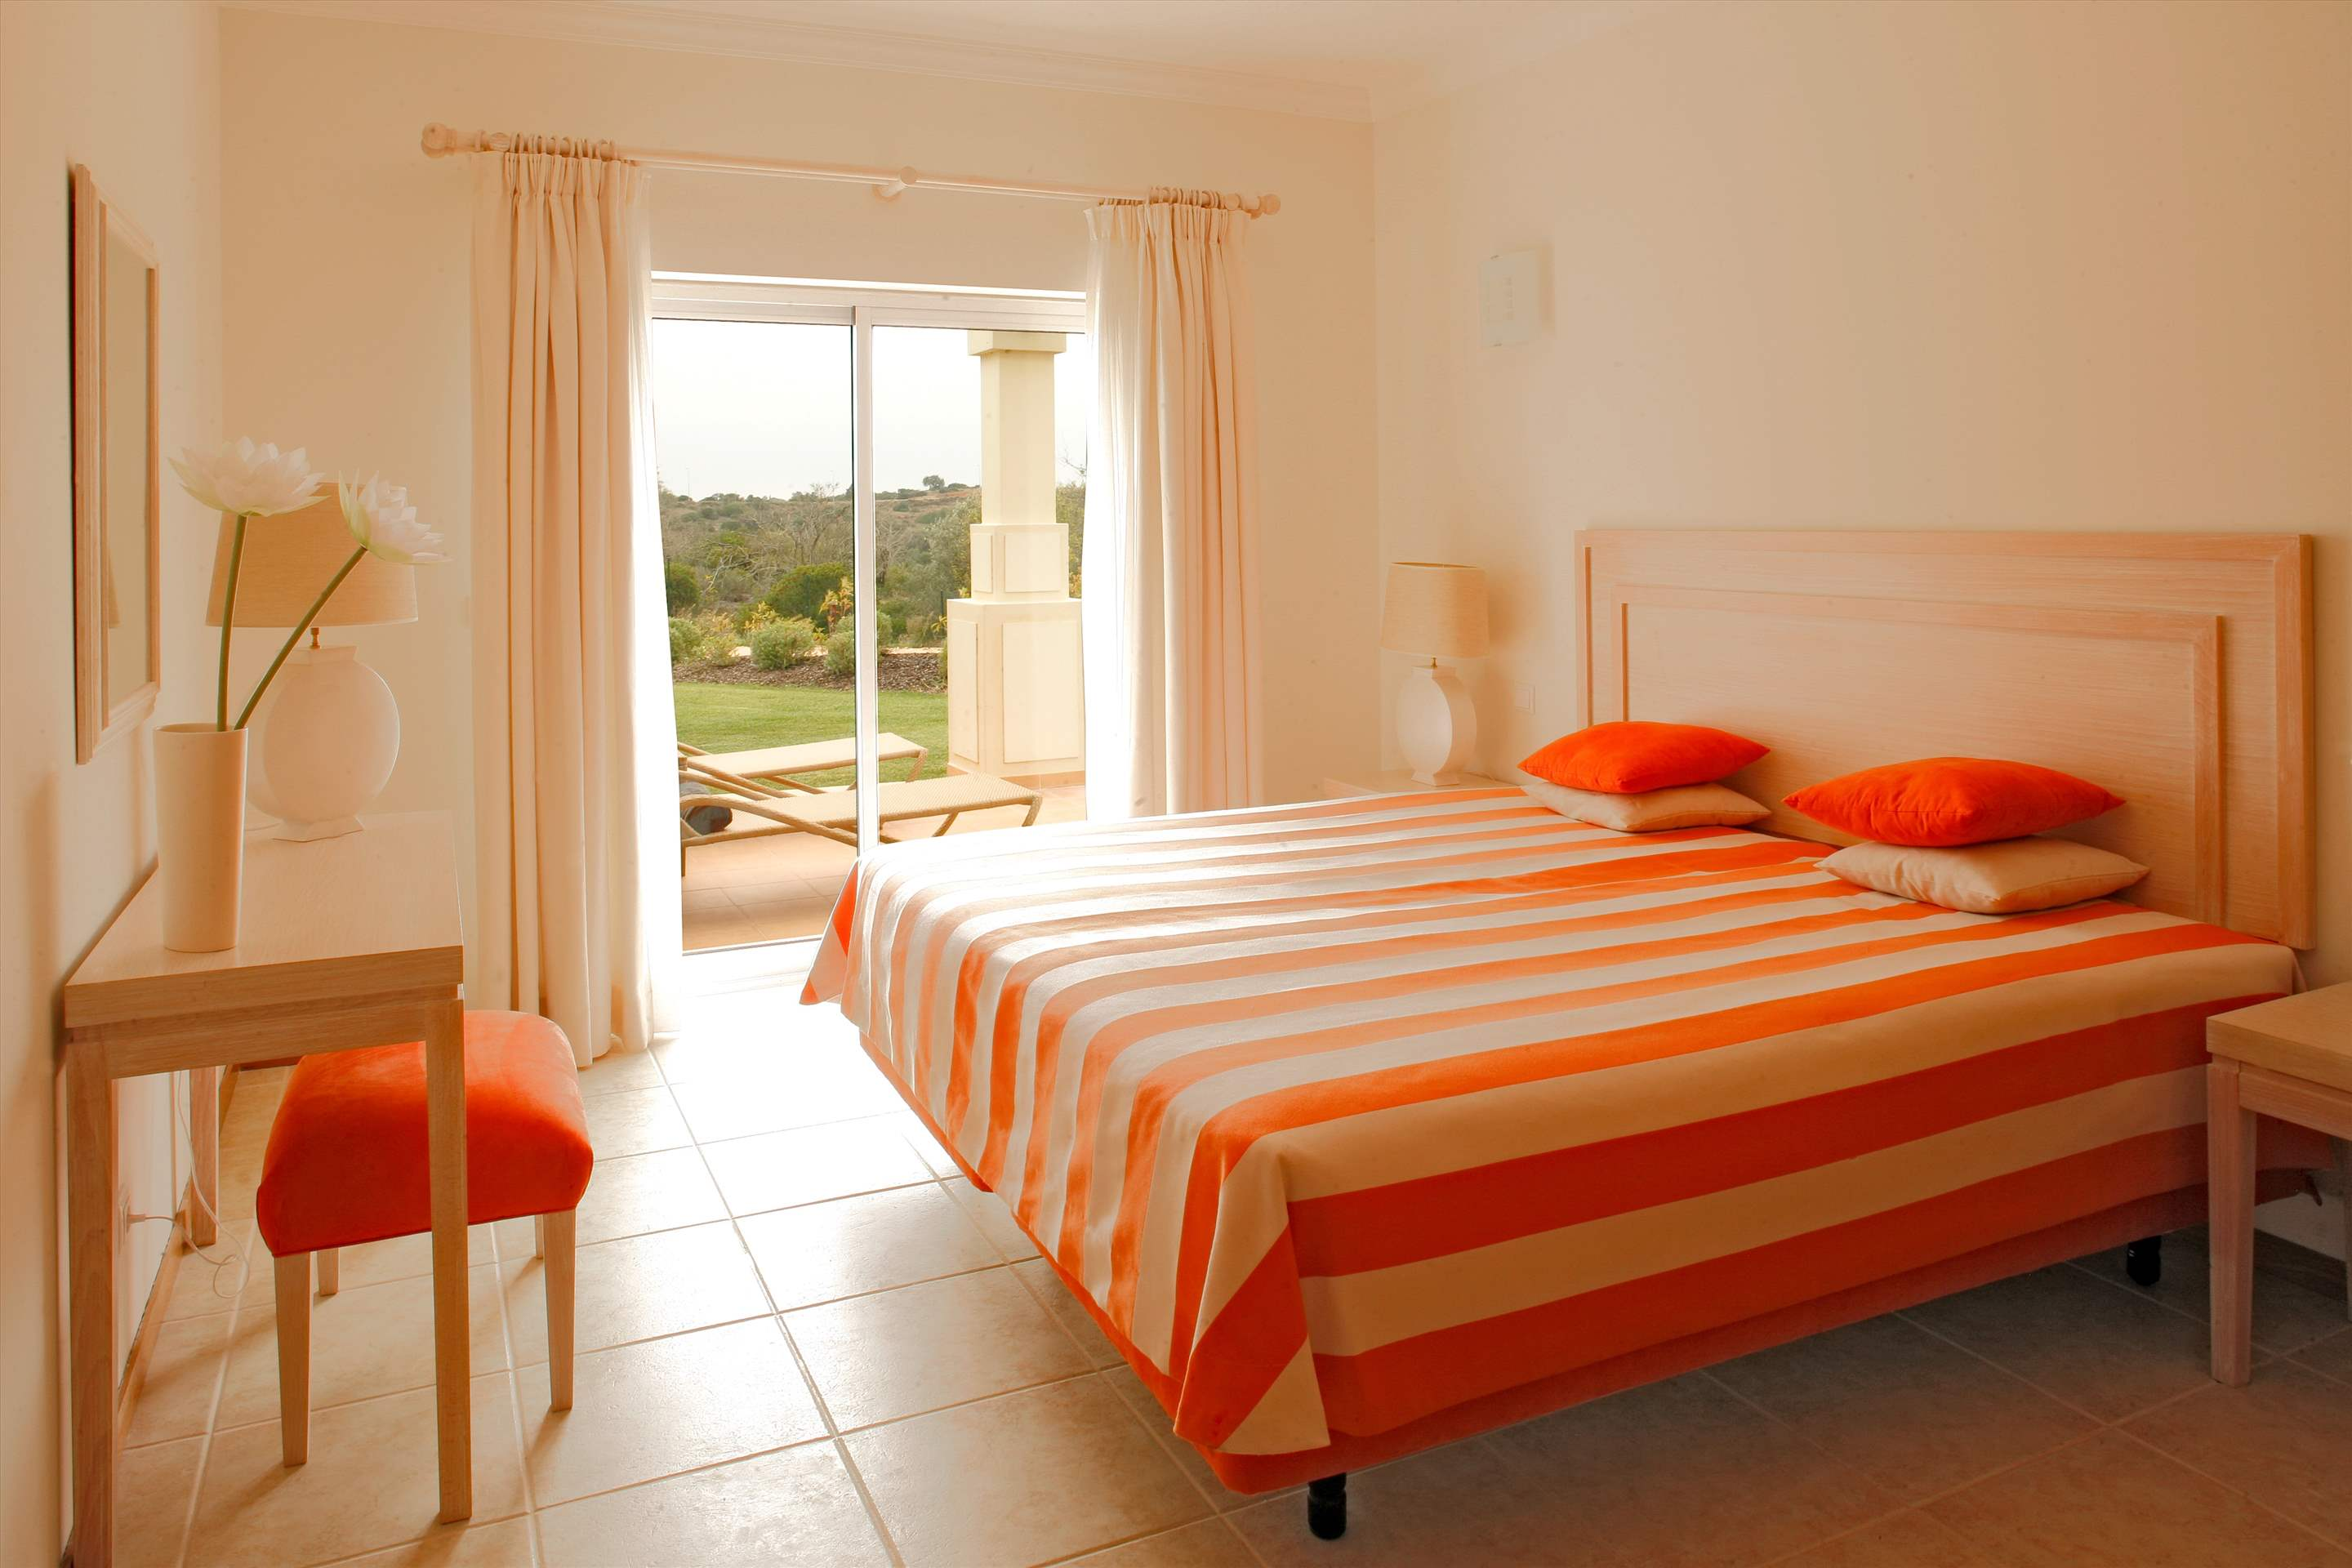 Vale d'Oliveiras 1 Bed Suite Garden View , Self Catering, 1 bedroom apartment in Vale d'Oliveiras Resort & Spa, Algarve Photo #4